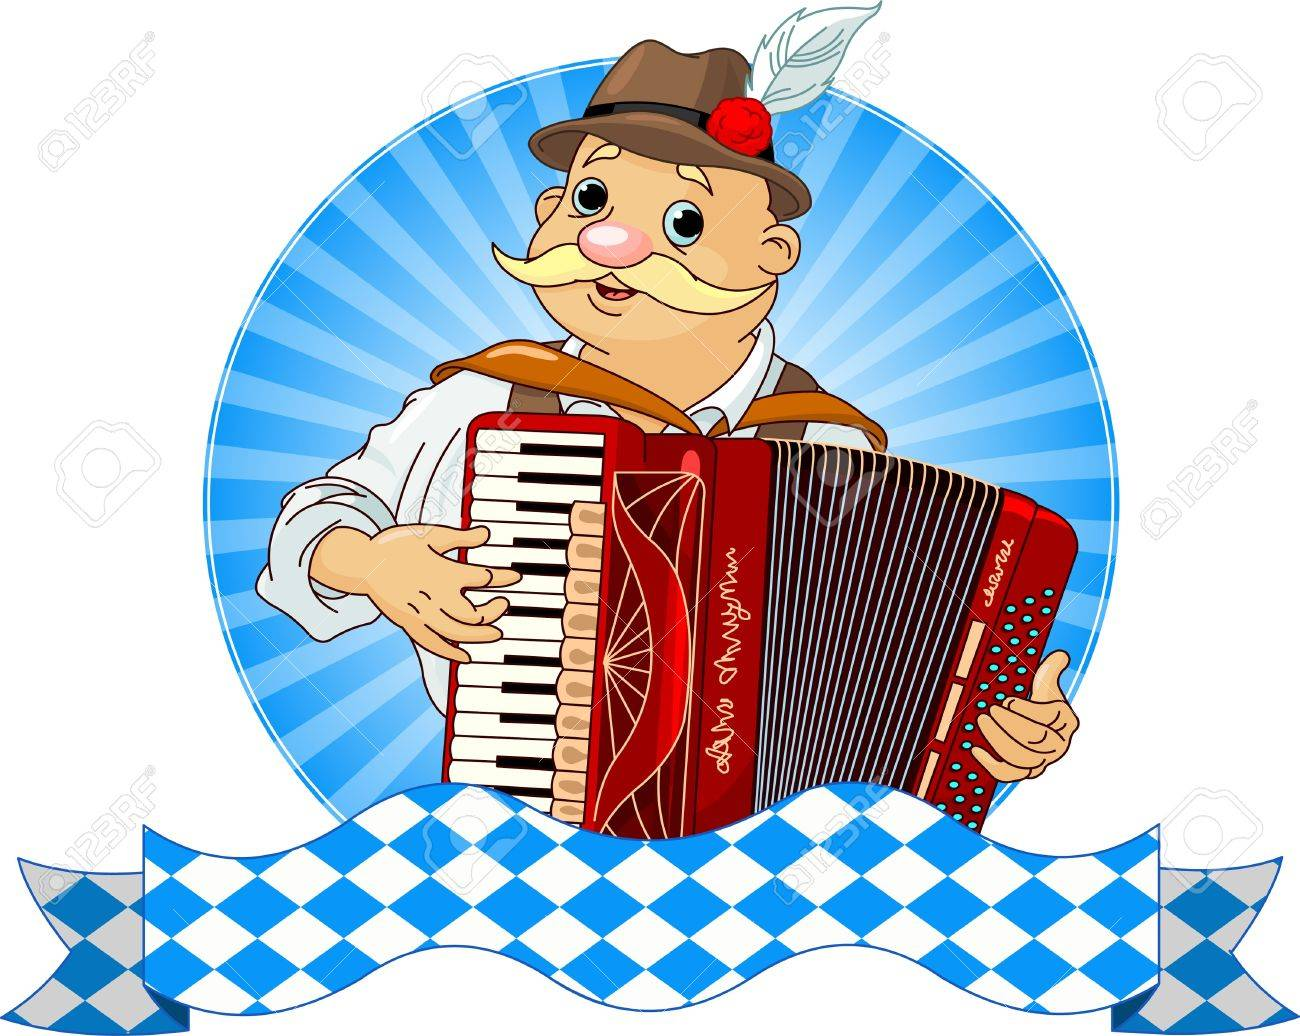 Oktoberfest Accordion Player with stripe for text.